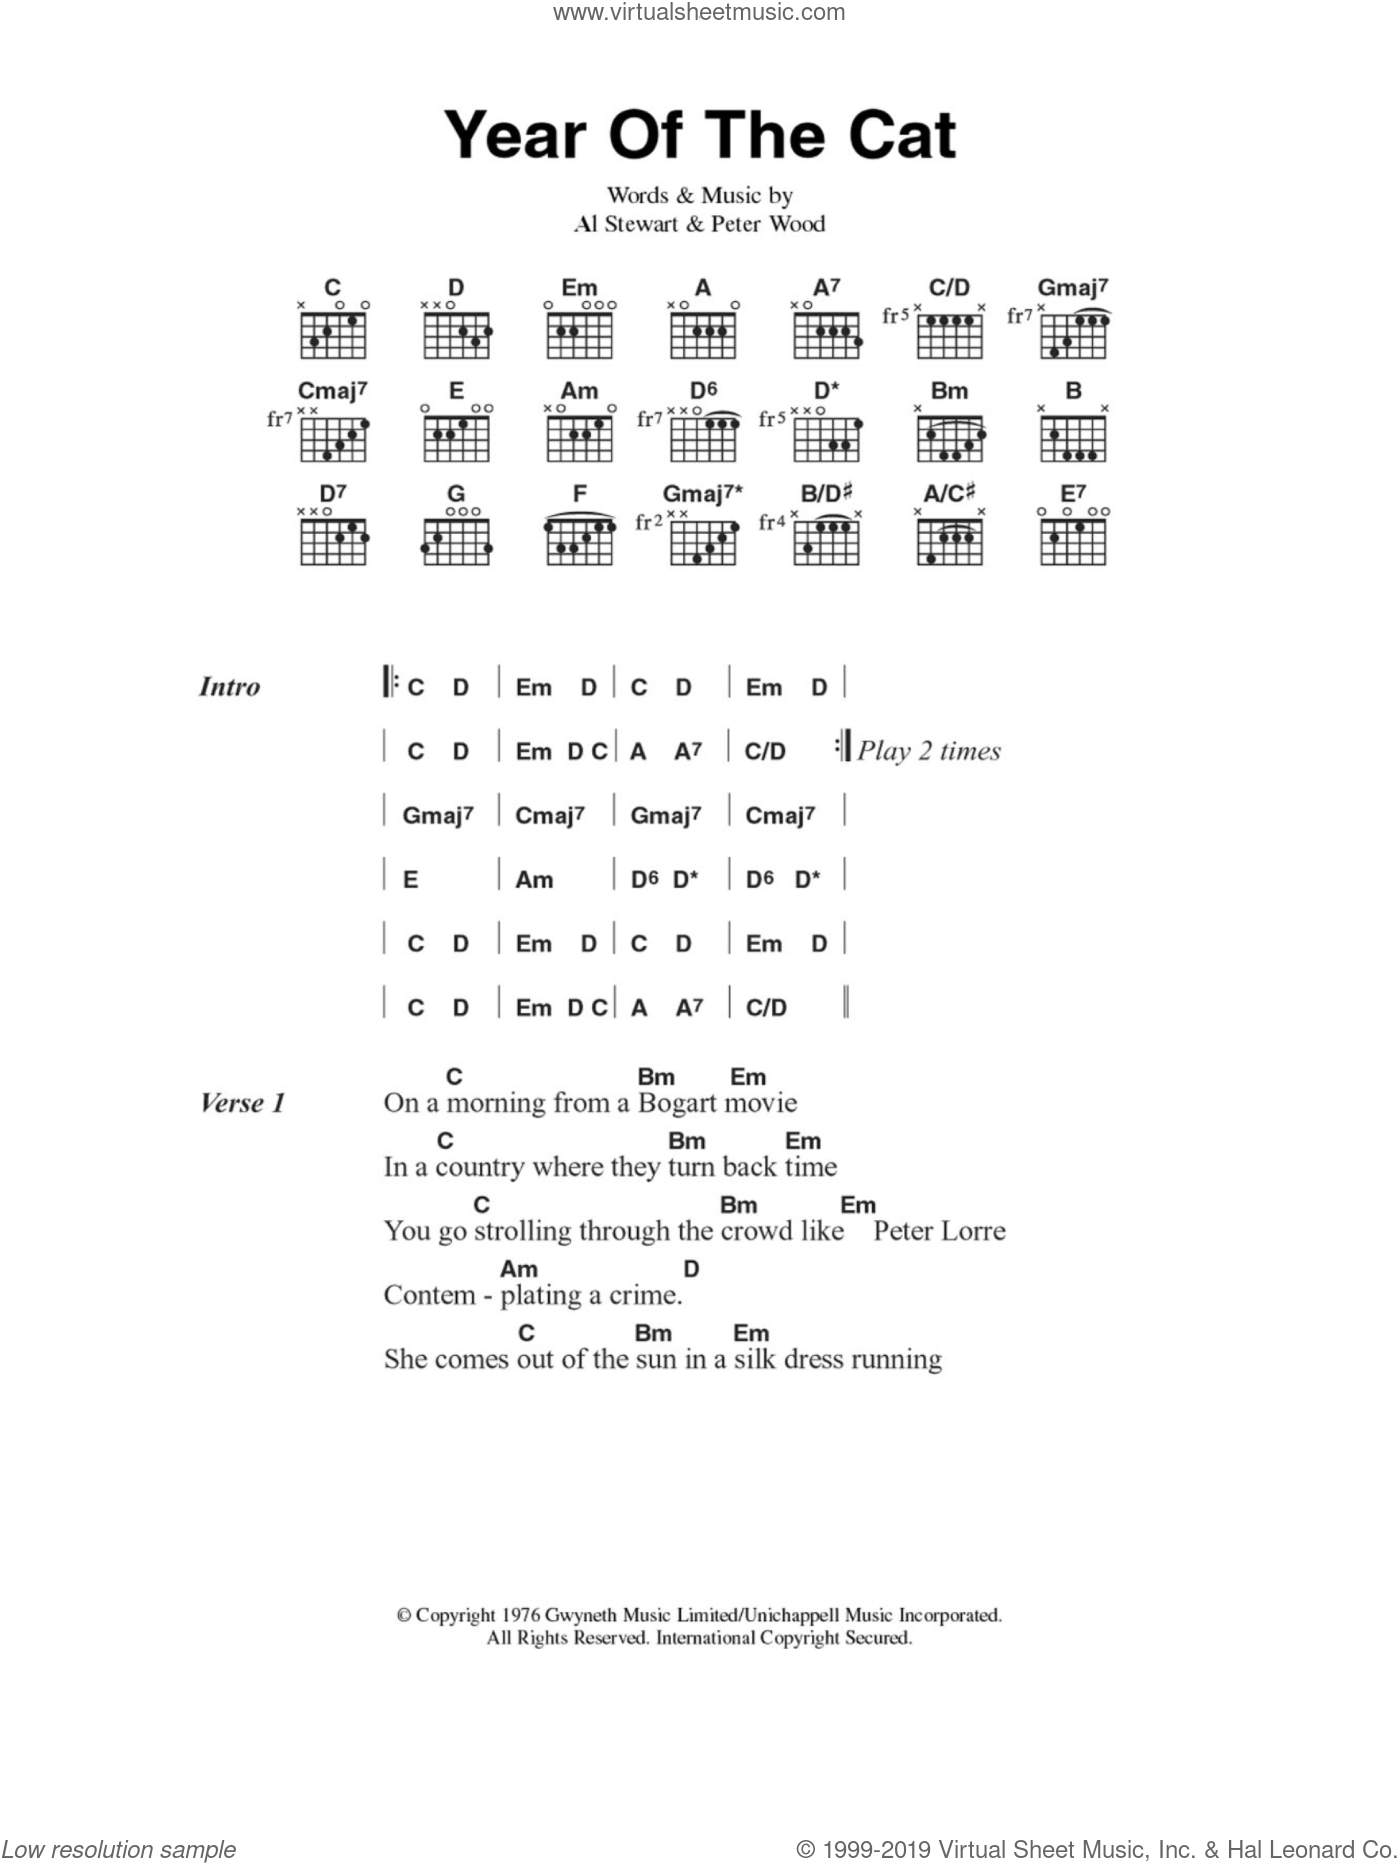 Year Of The Cat sheet music for guitar (chords) by Peter Wood